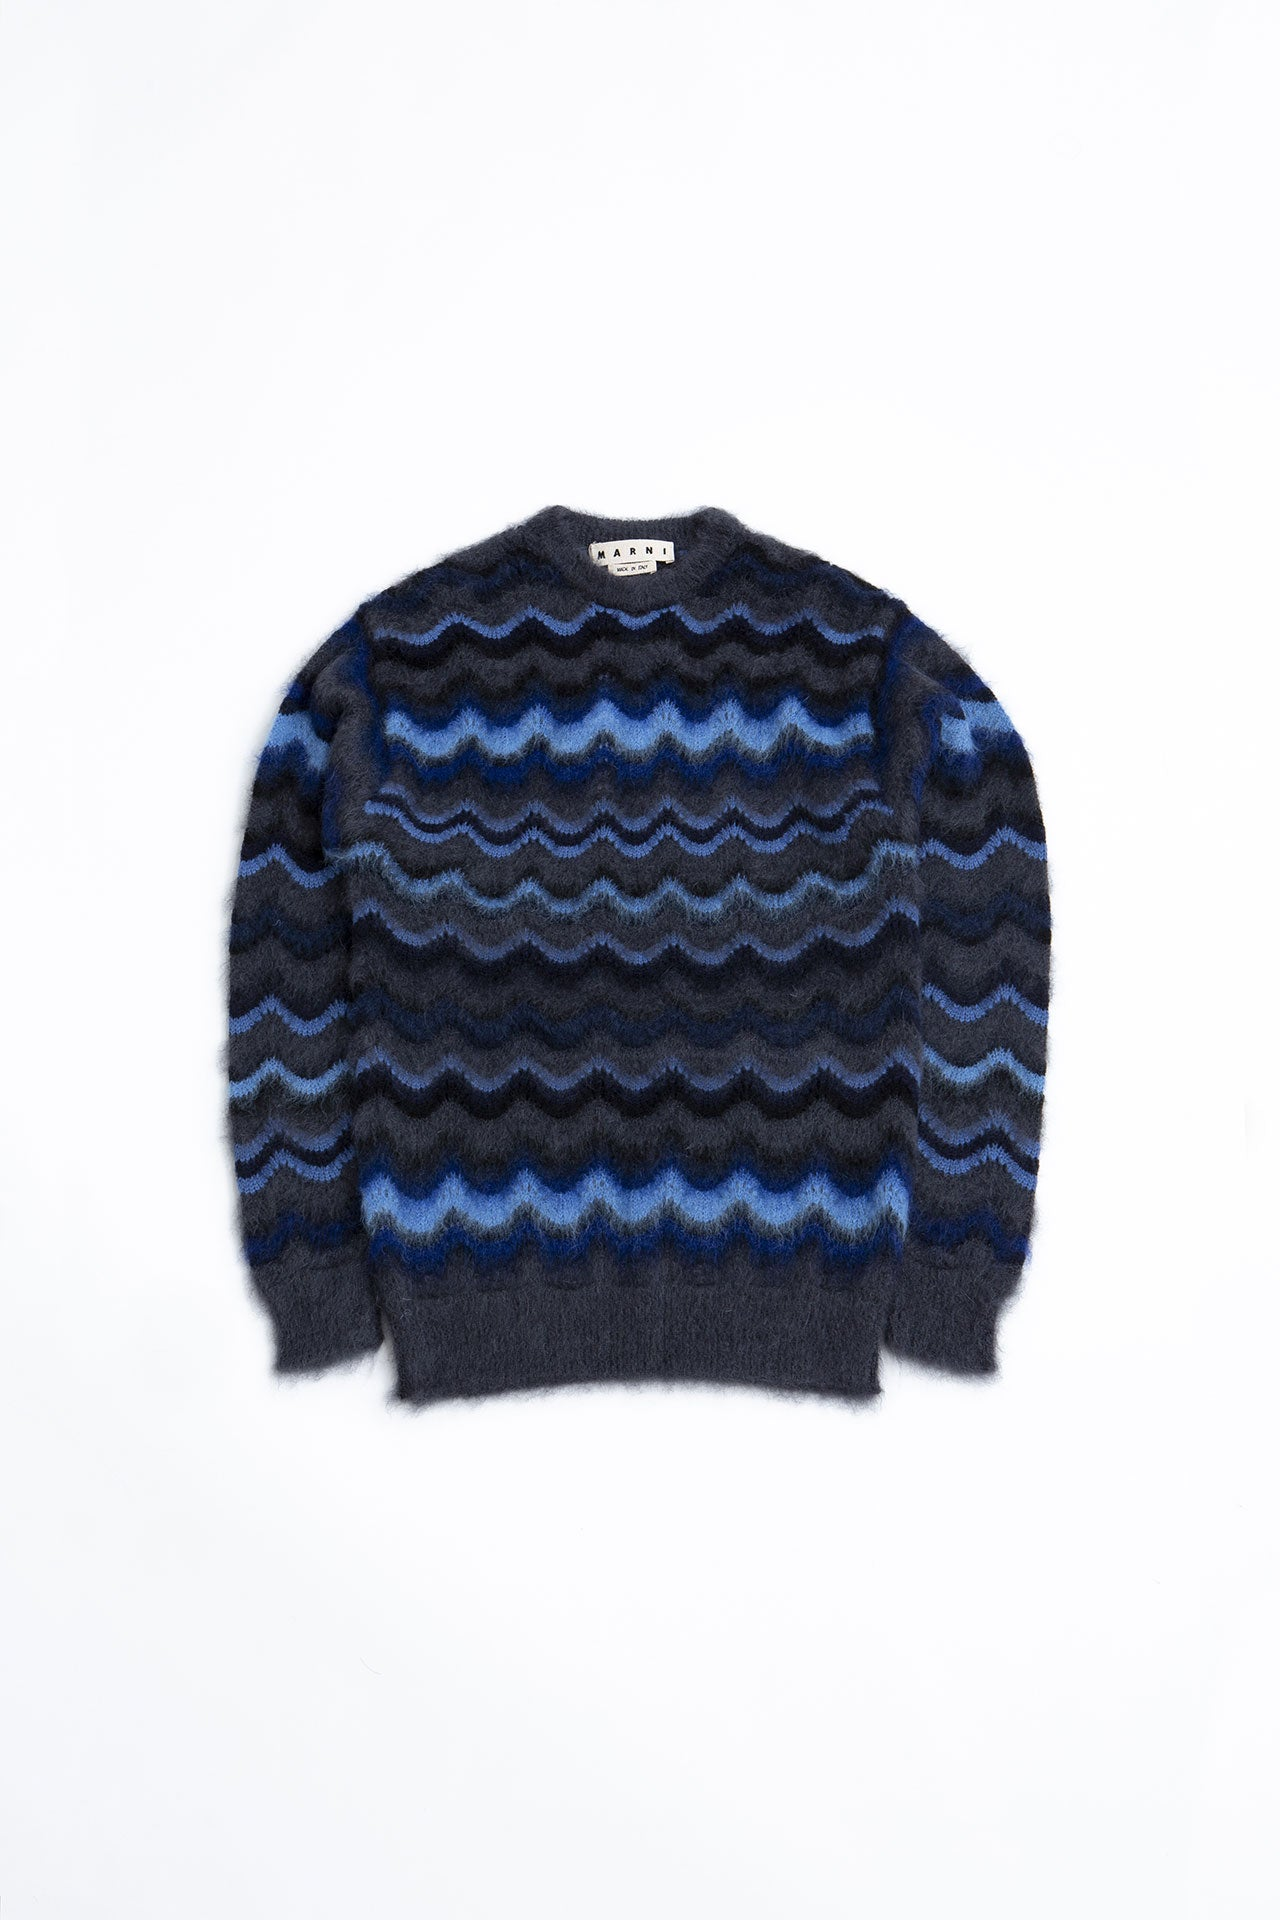 Round Neck Sweater navy, black